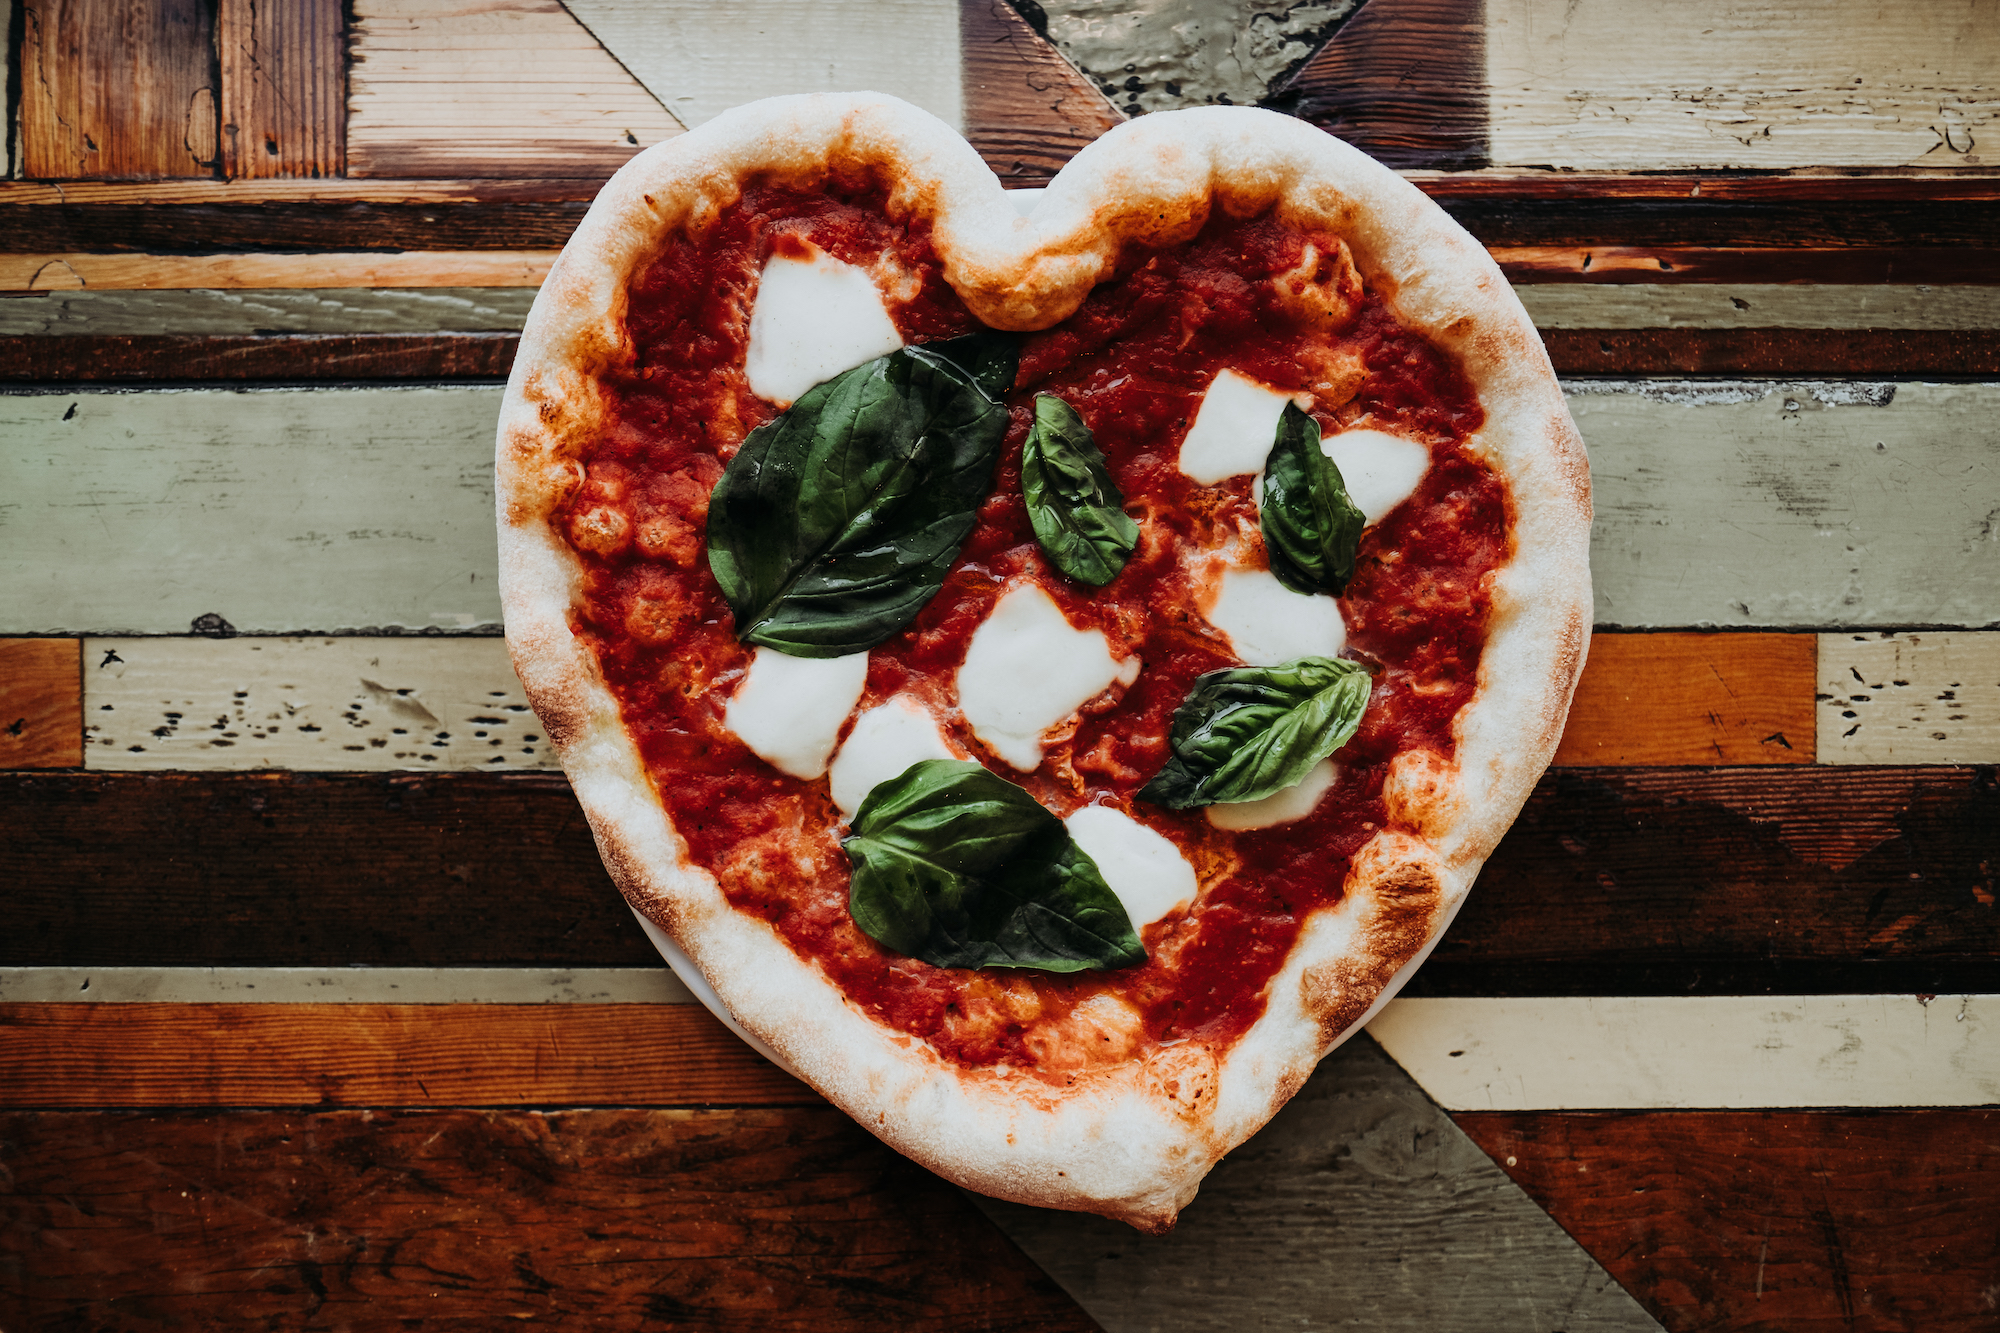 Kitchen Table Restaurants Offering Special Menu Features Over Valentine's Day Weekend